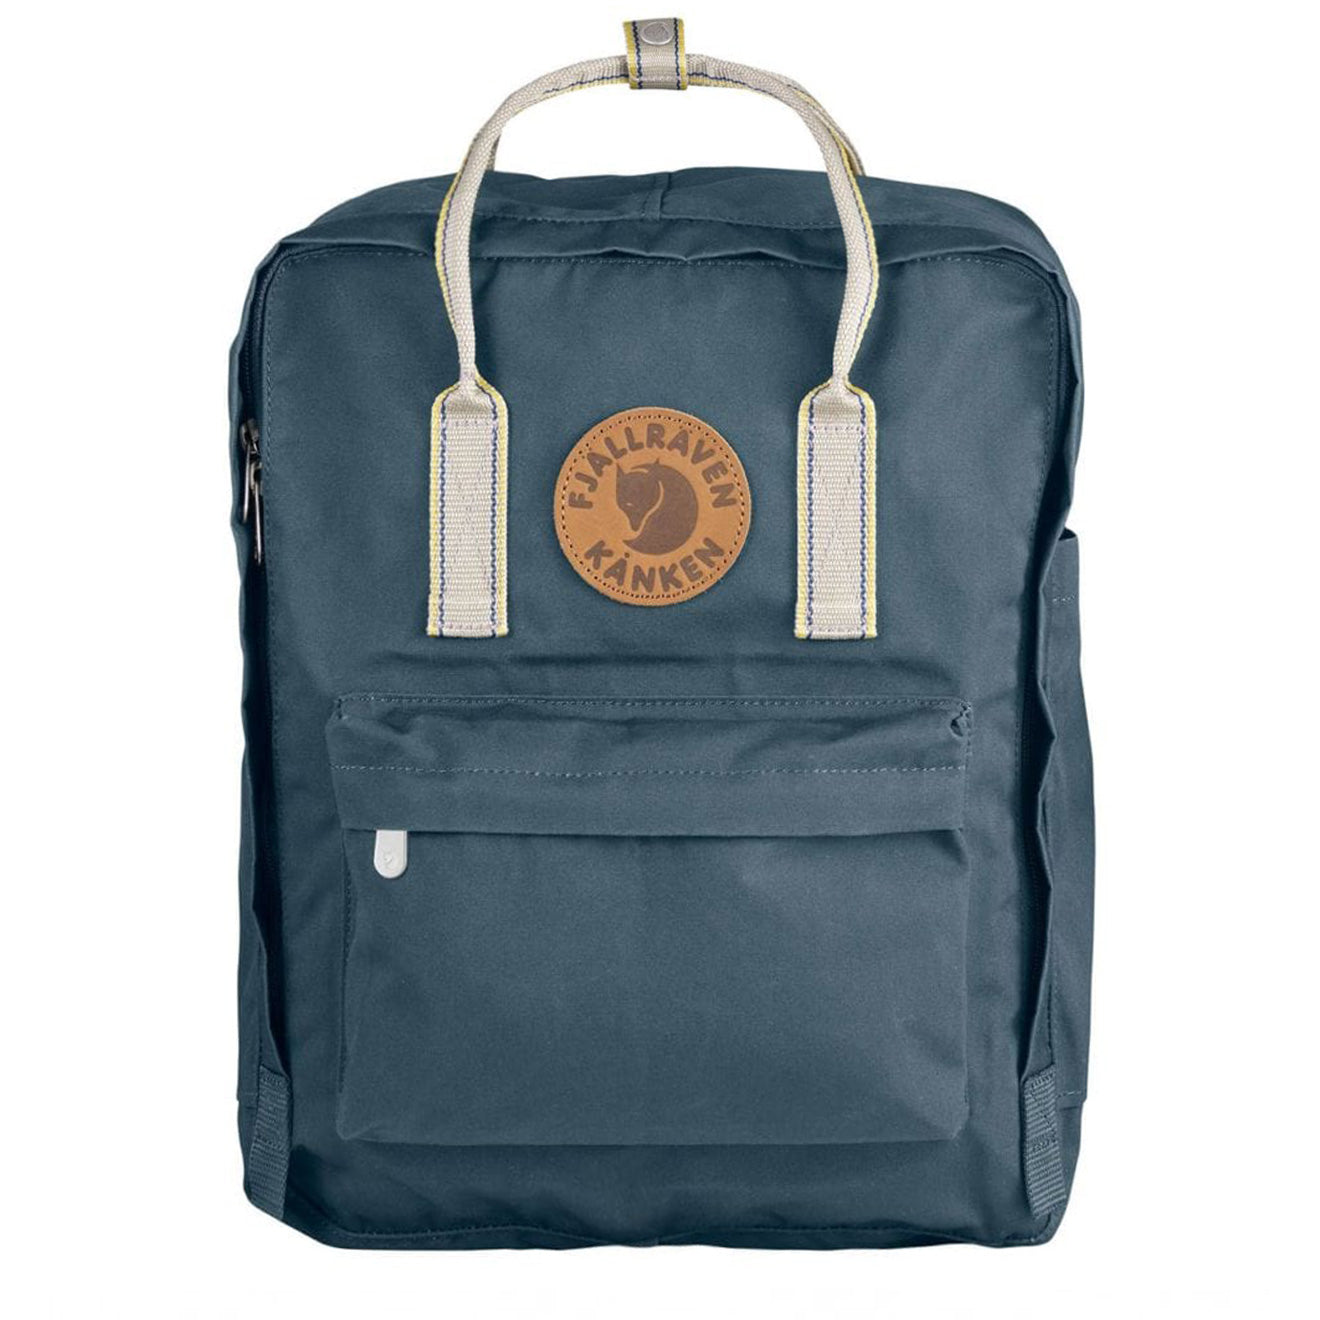 74824688e Fjallraven Kanken Greenland Backpack Dusk / Greenland - SALE 15% off ...